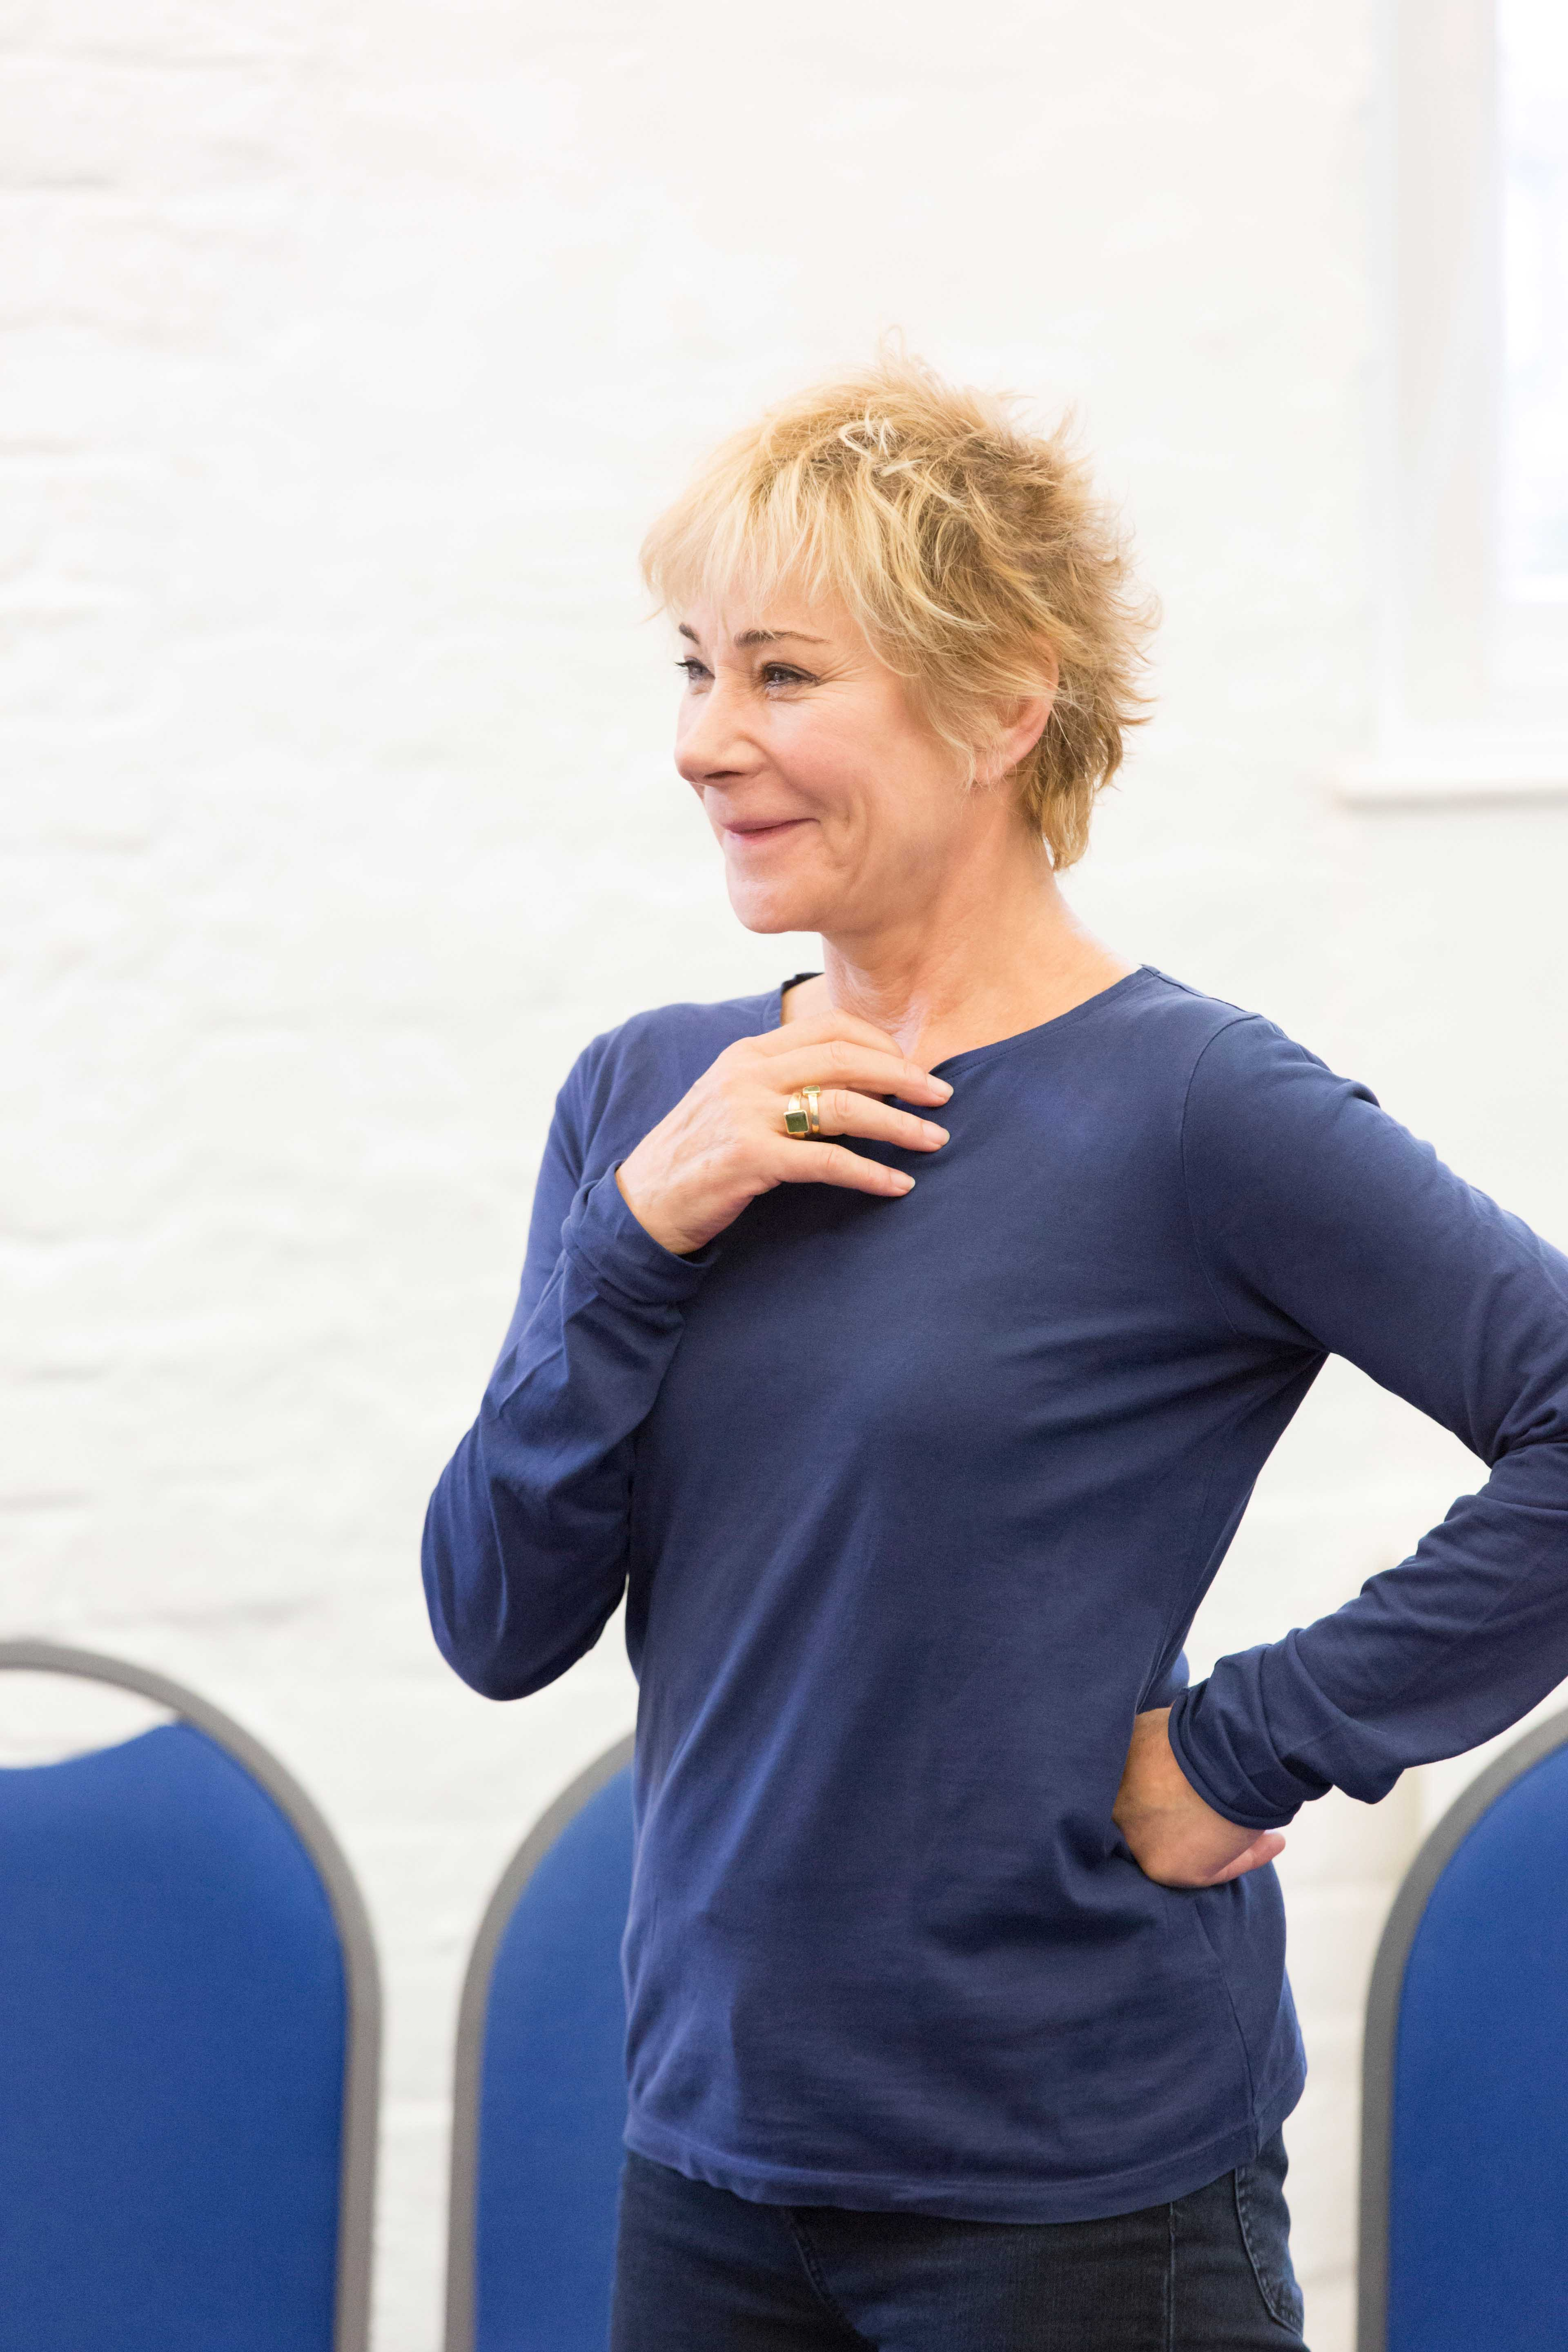 Zoe Wanamaker in rehearsals for Harlequinade. Credit Johan Persson | Rehearsal images of Kenneth Branagh's Harlequinade